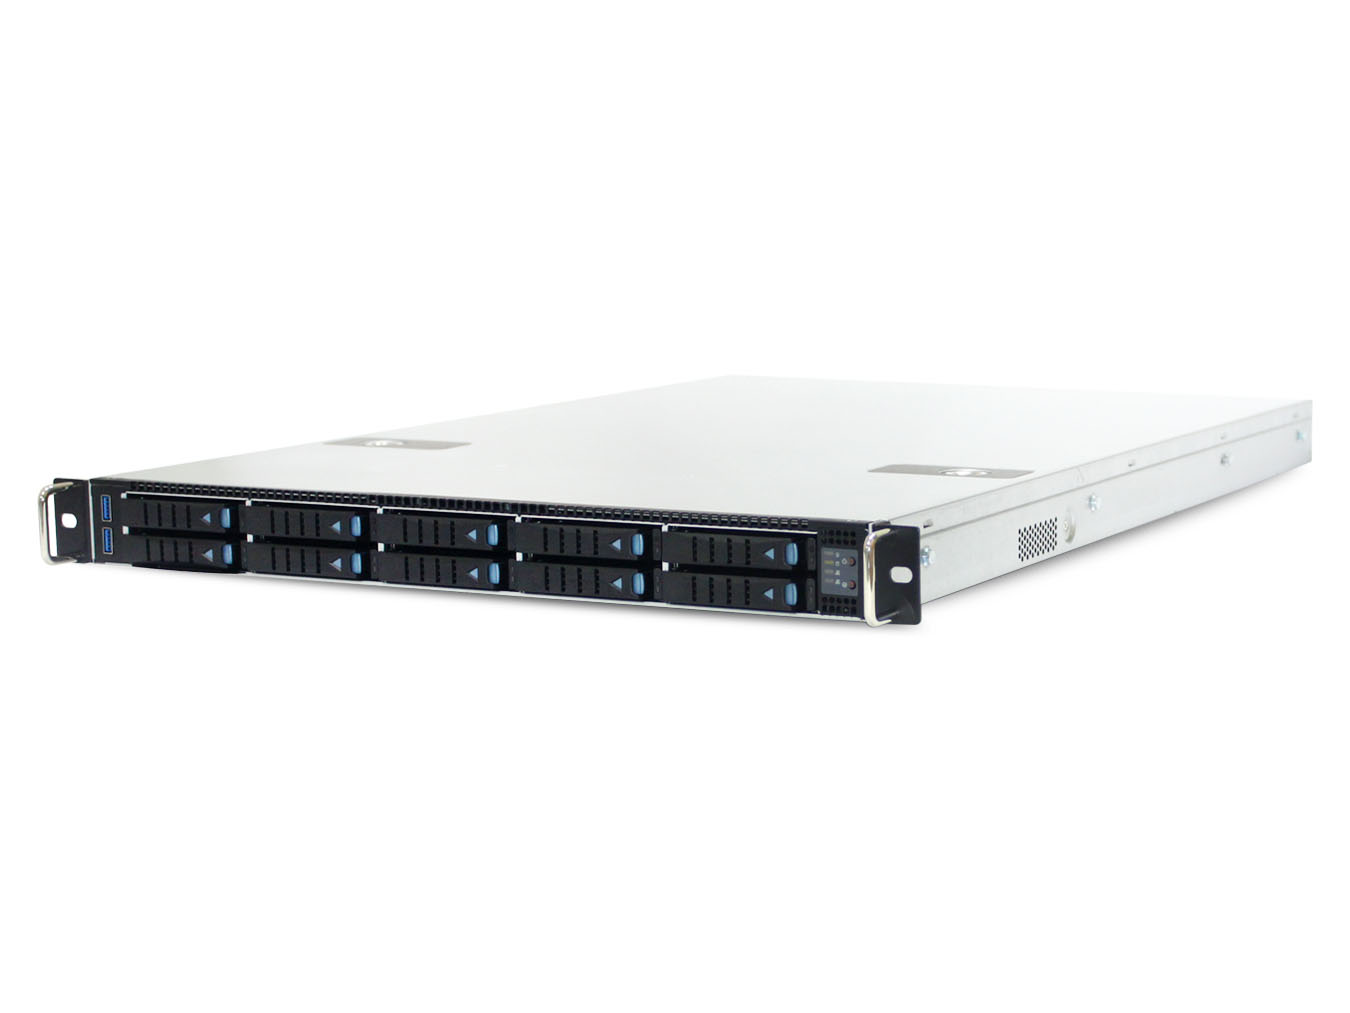 AIC SB102-SP XP1-S102SP03 1U 10-Bay Storage Server